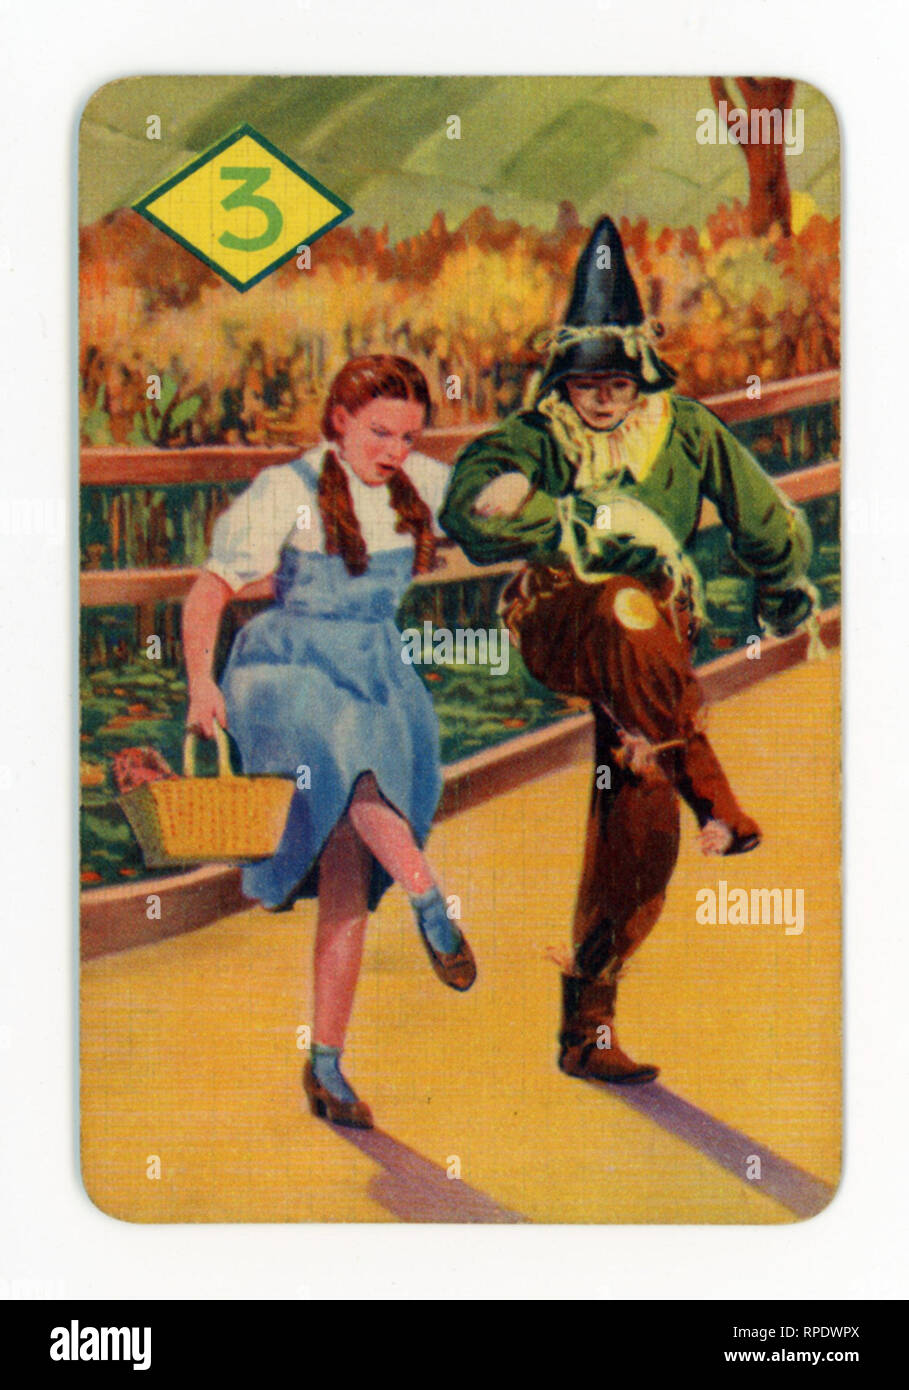 The Wizard of Oz card game produced in London in 1940 by Castell Brothers, Ltd. (Pepys brand) to coincide with the launch of the M.G.M. film in the UK in that year Stock Photo